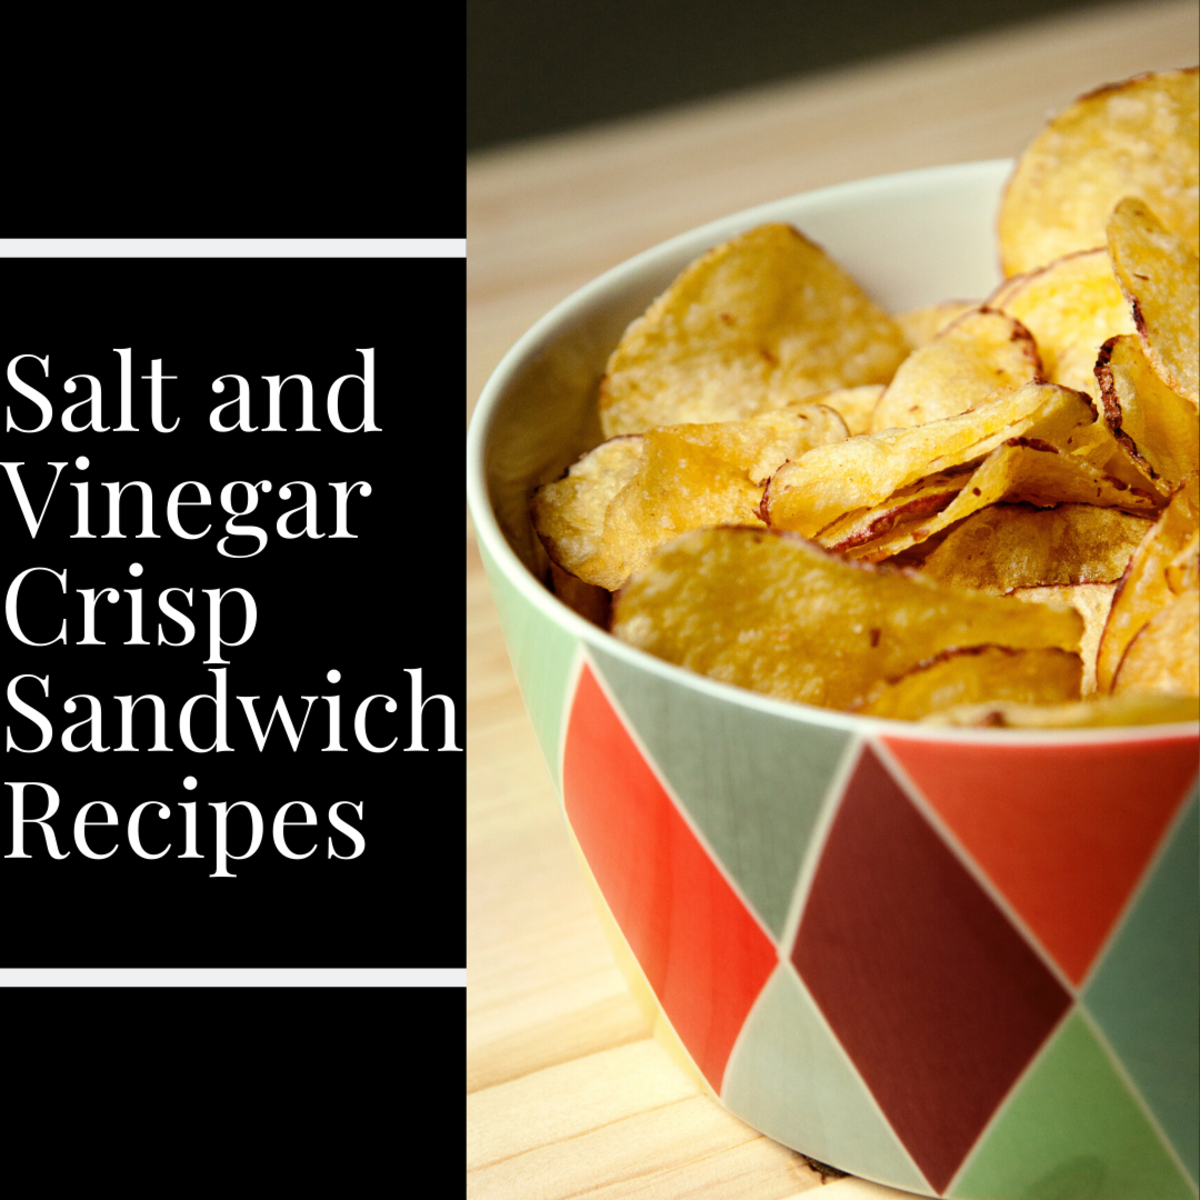 Salt and vinegar crisps are absolutely perfect on sandwiches.